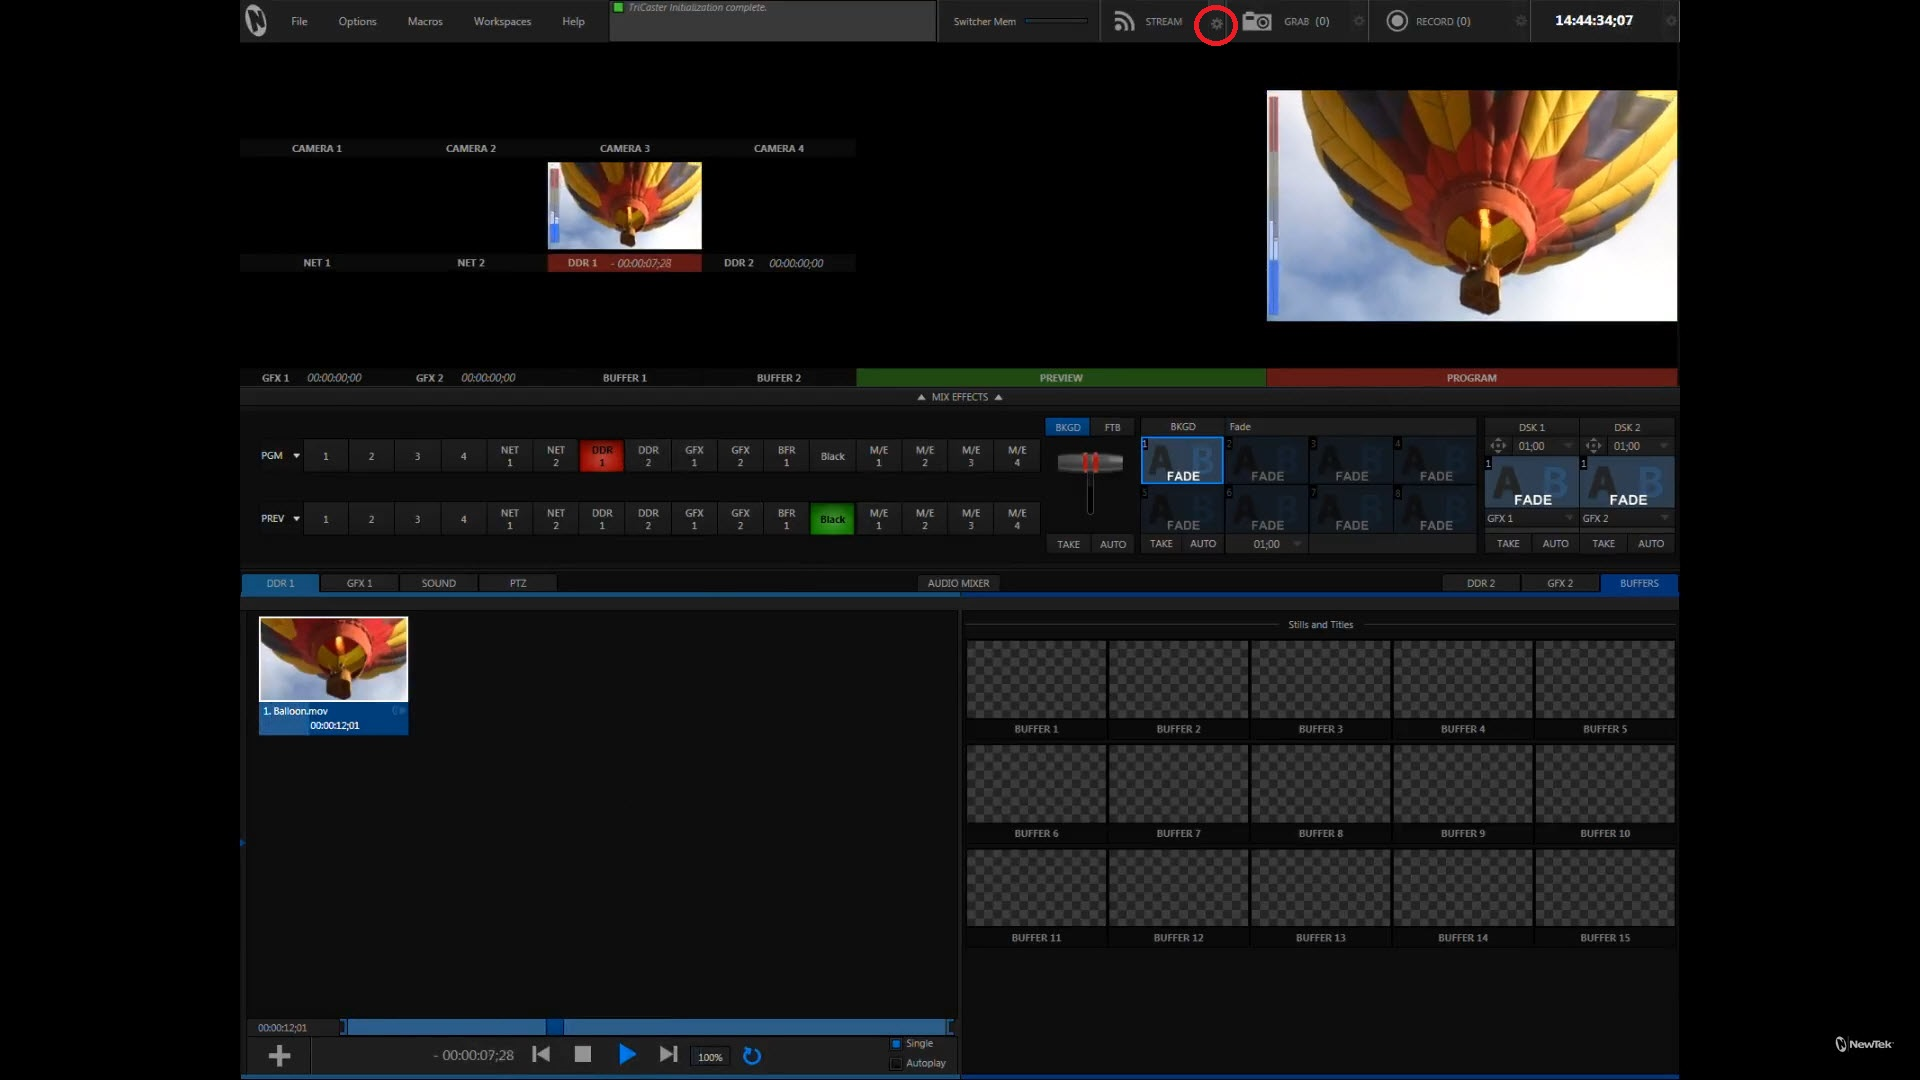 TriCaster UI: Click on the Settings gear for the Stream button.